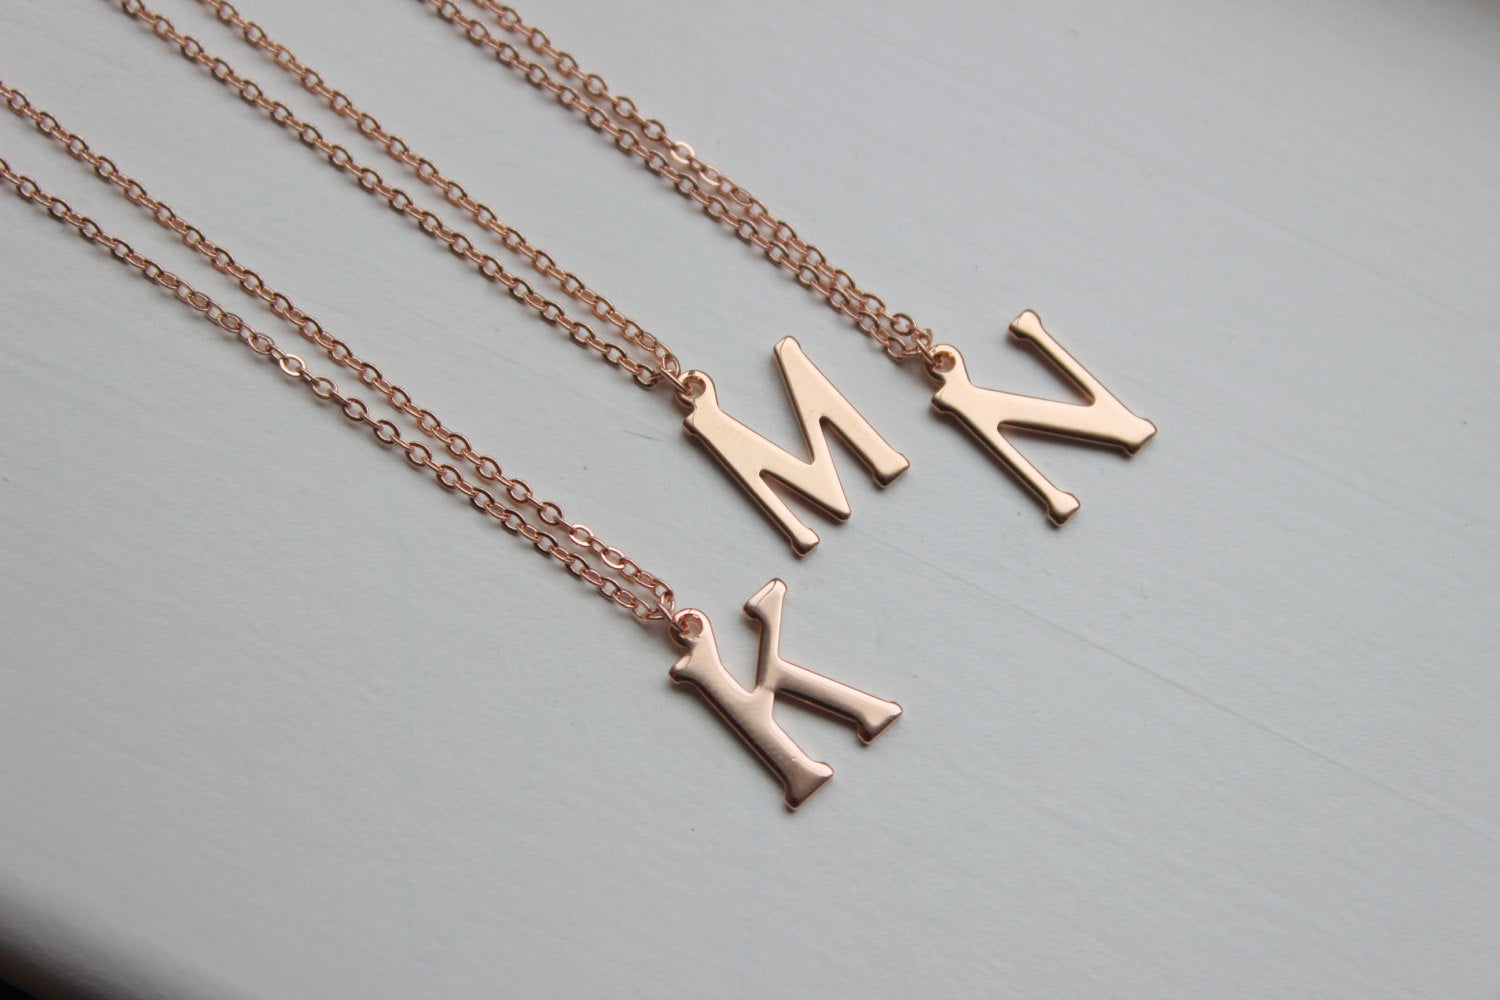 HOLIDAY SALE! Rose Gold Initial Necklace - Rose Gold Jewelry - Letter Monogram Necklace Bridesmaid Jewelry Wedding Jewelry - Christmas Gift